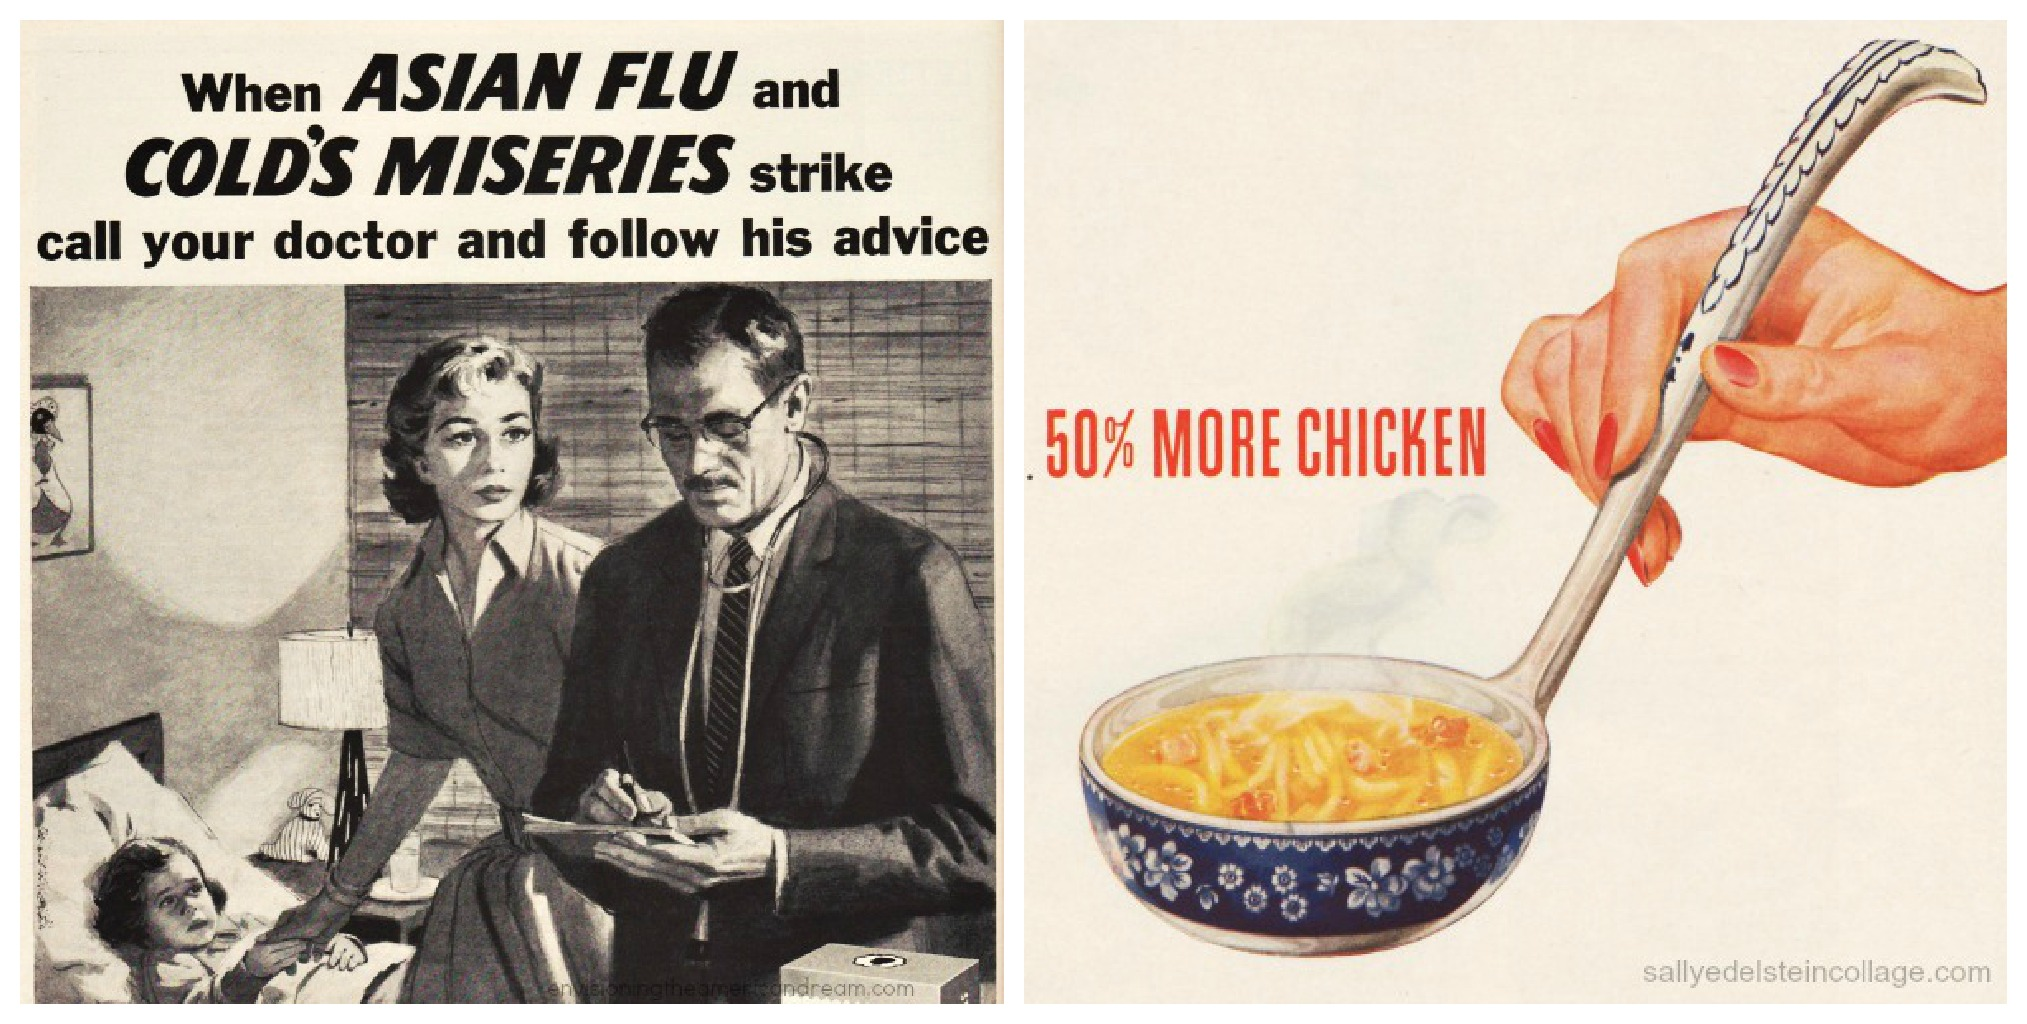 Memories Of The Mid Century Flu Outbreak Envisioning The